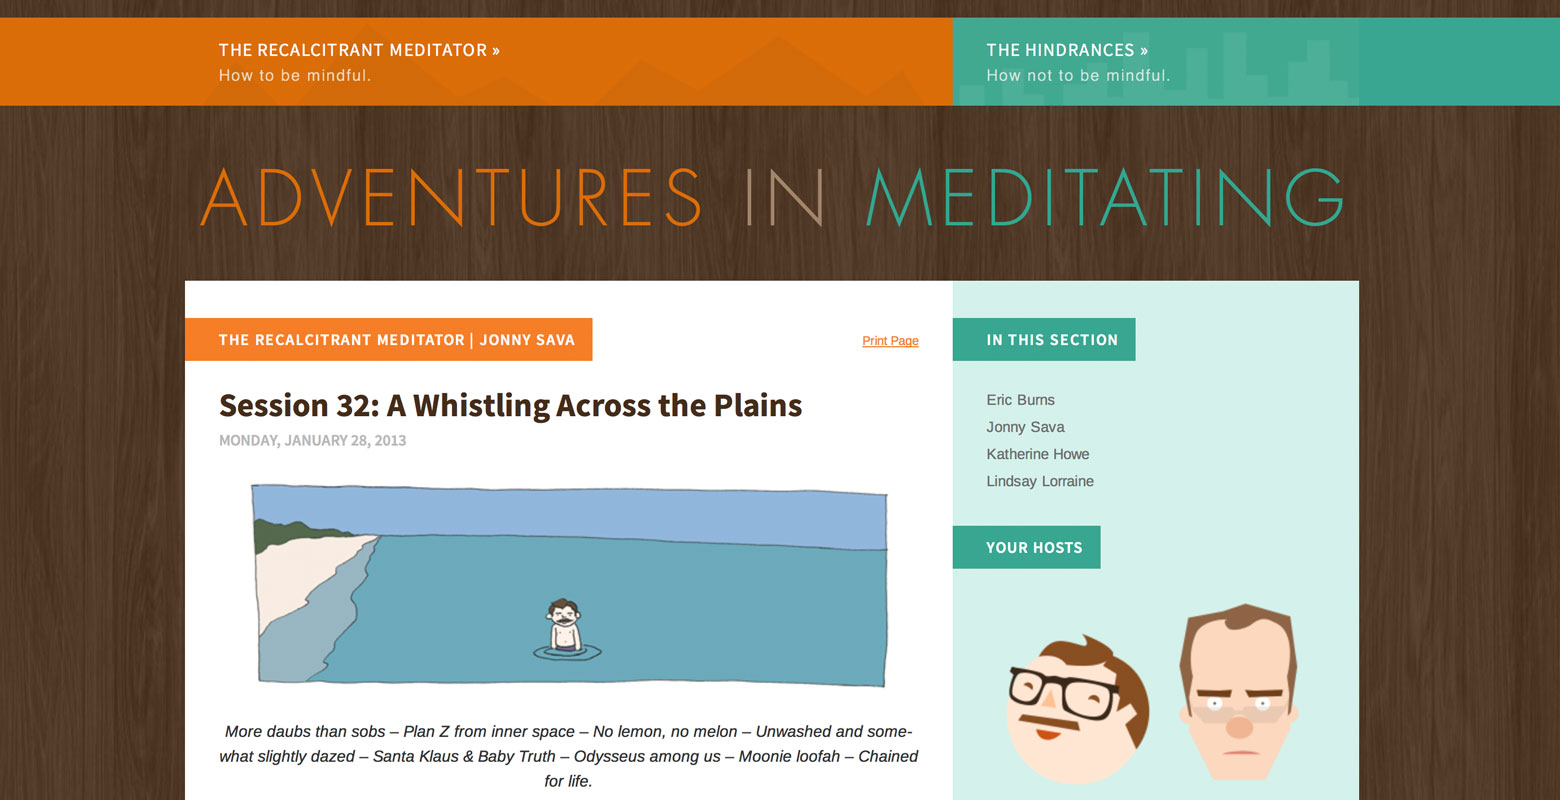 Adventures in Meditating